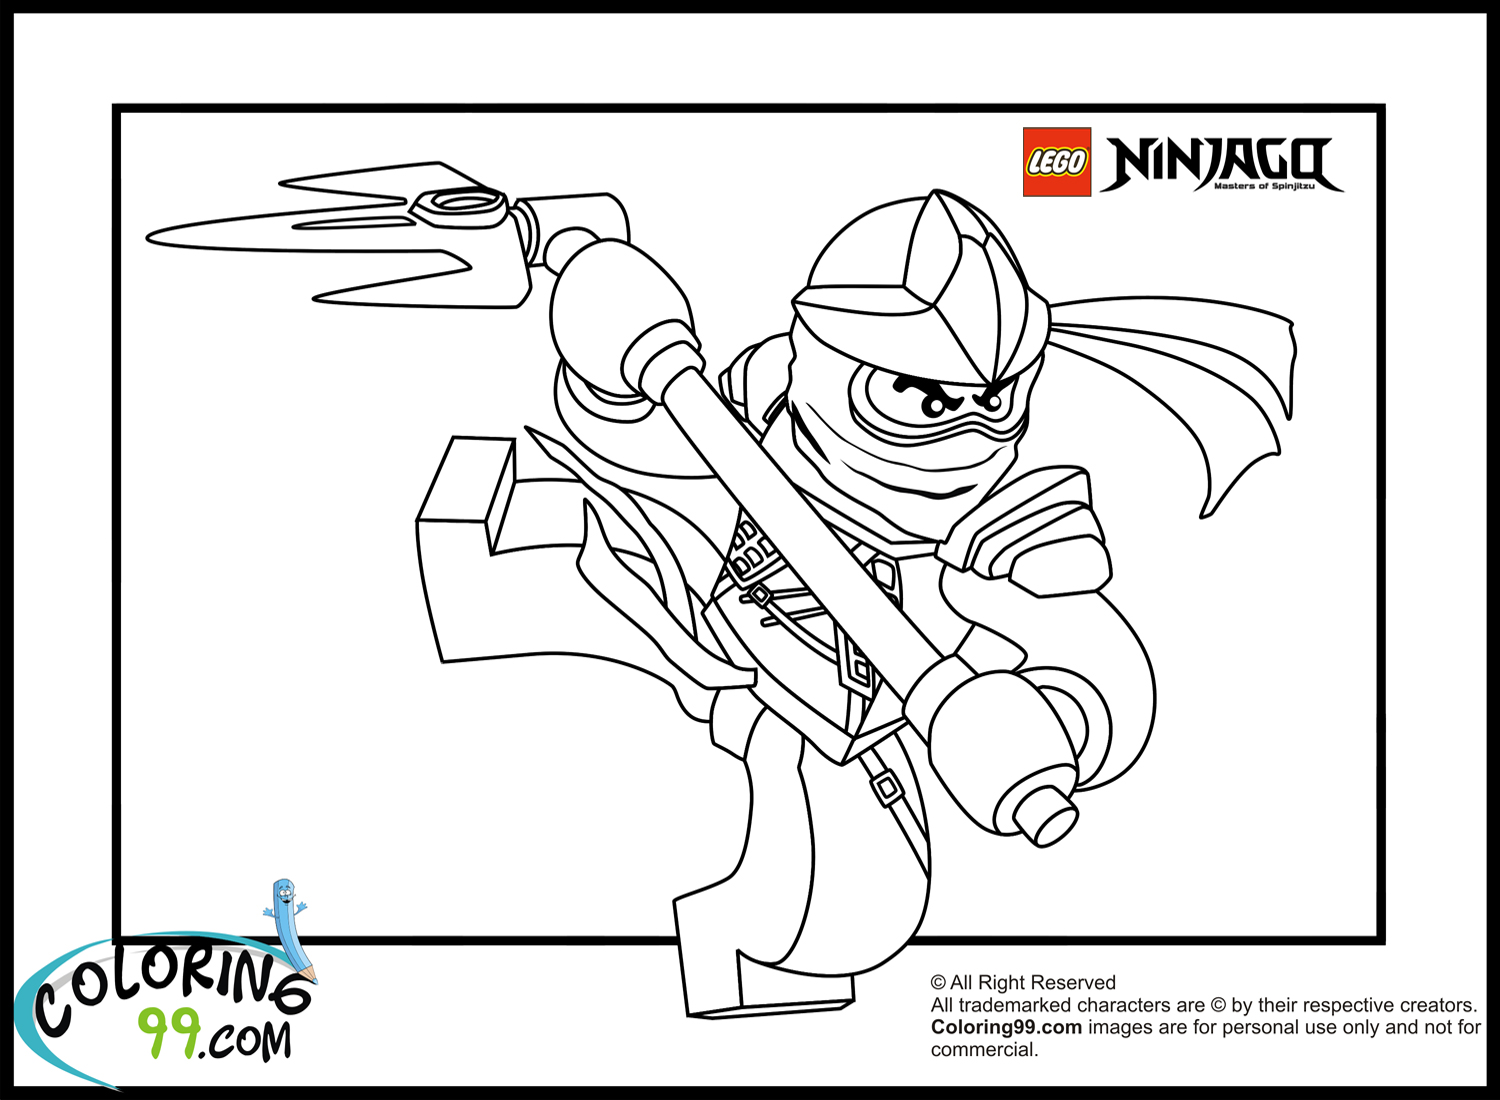 lego ninjago coloring pages cole - photo#23